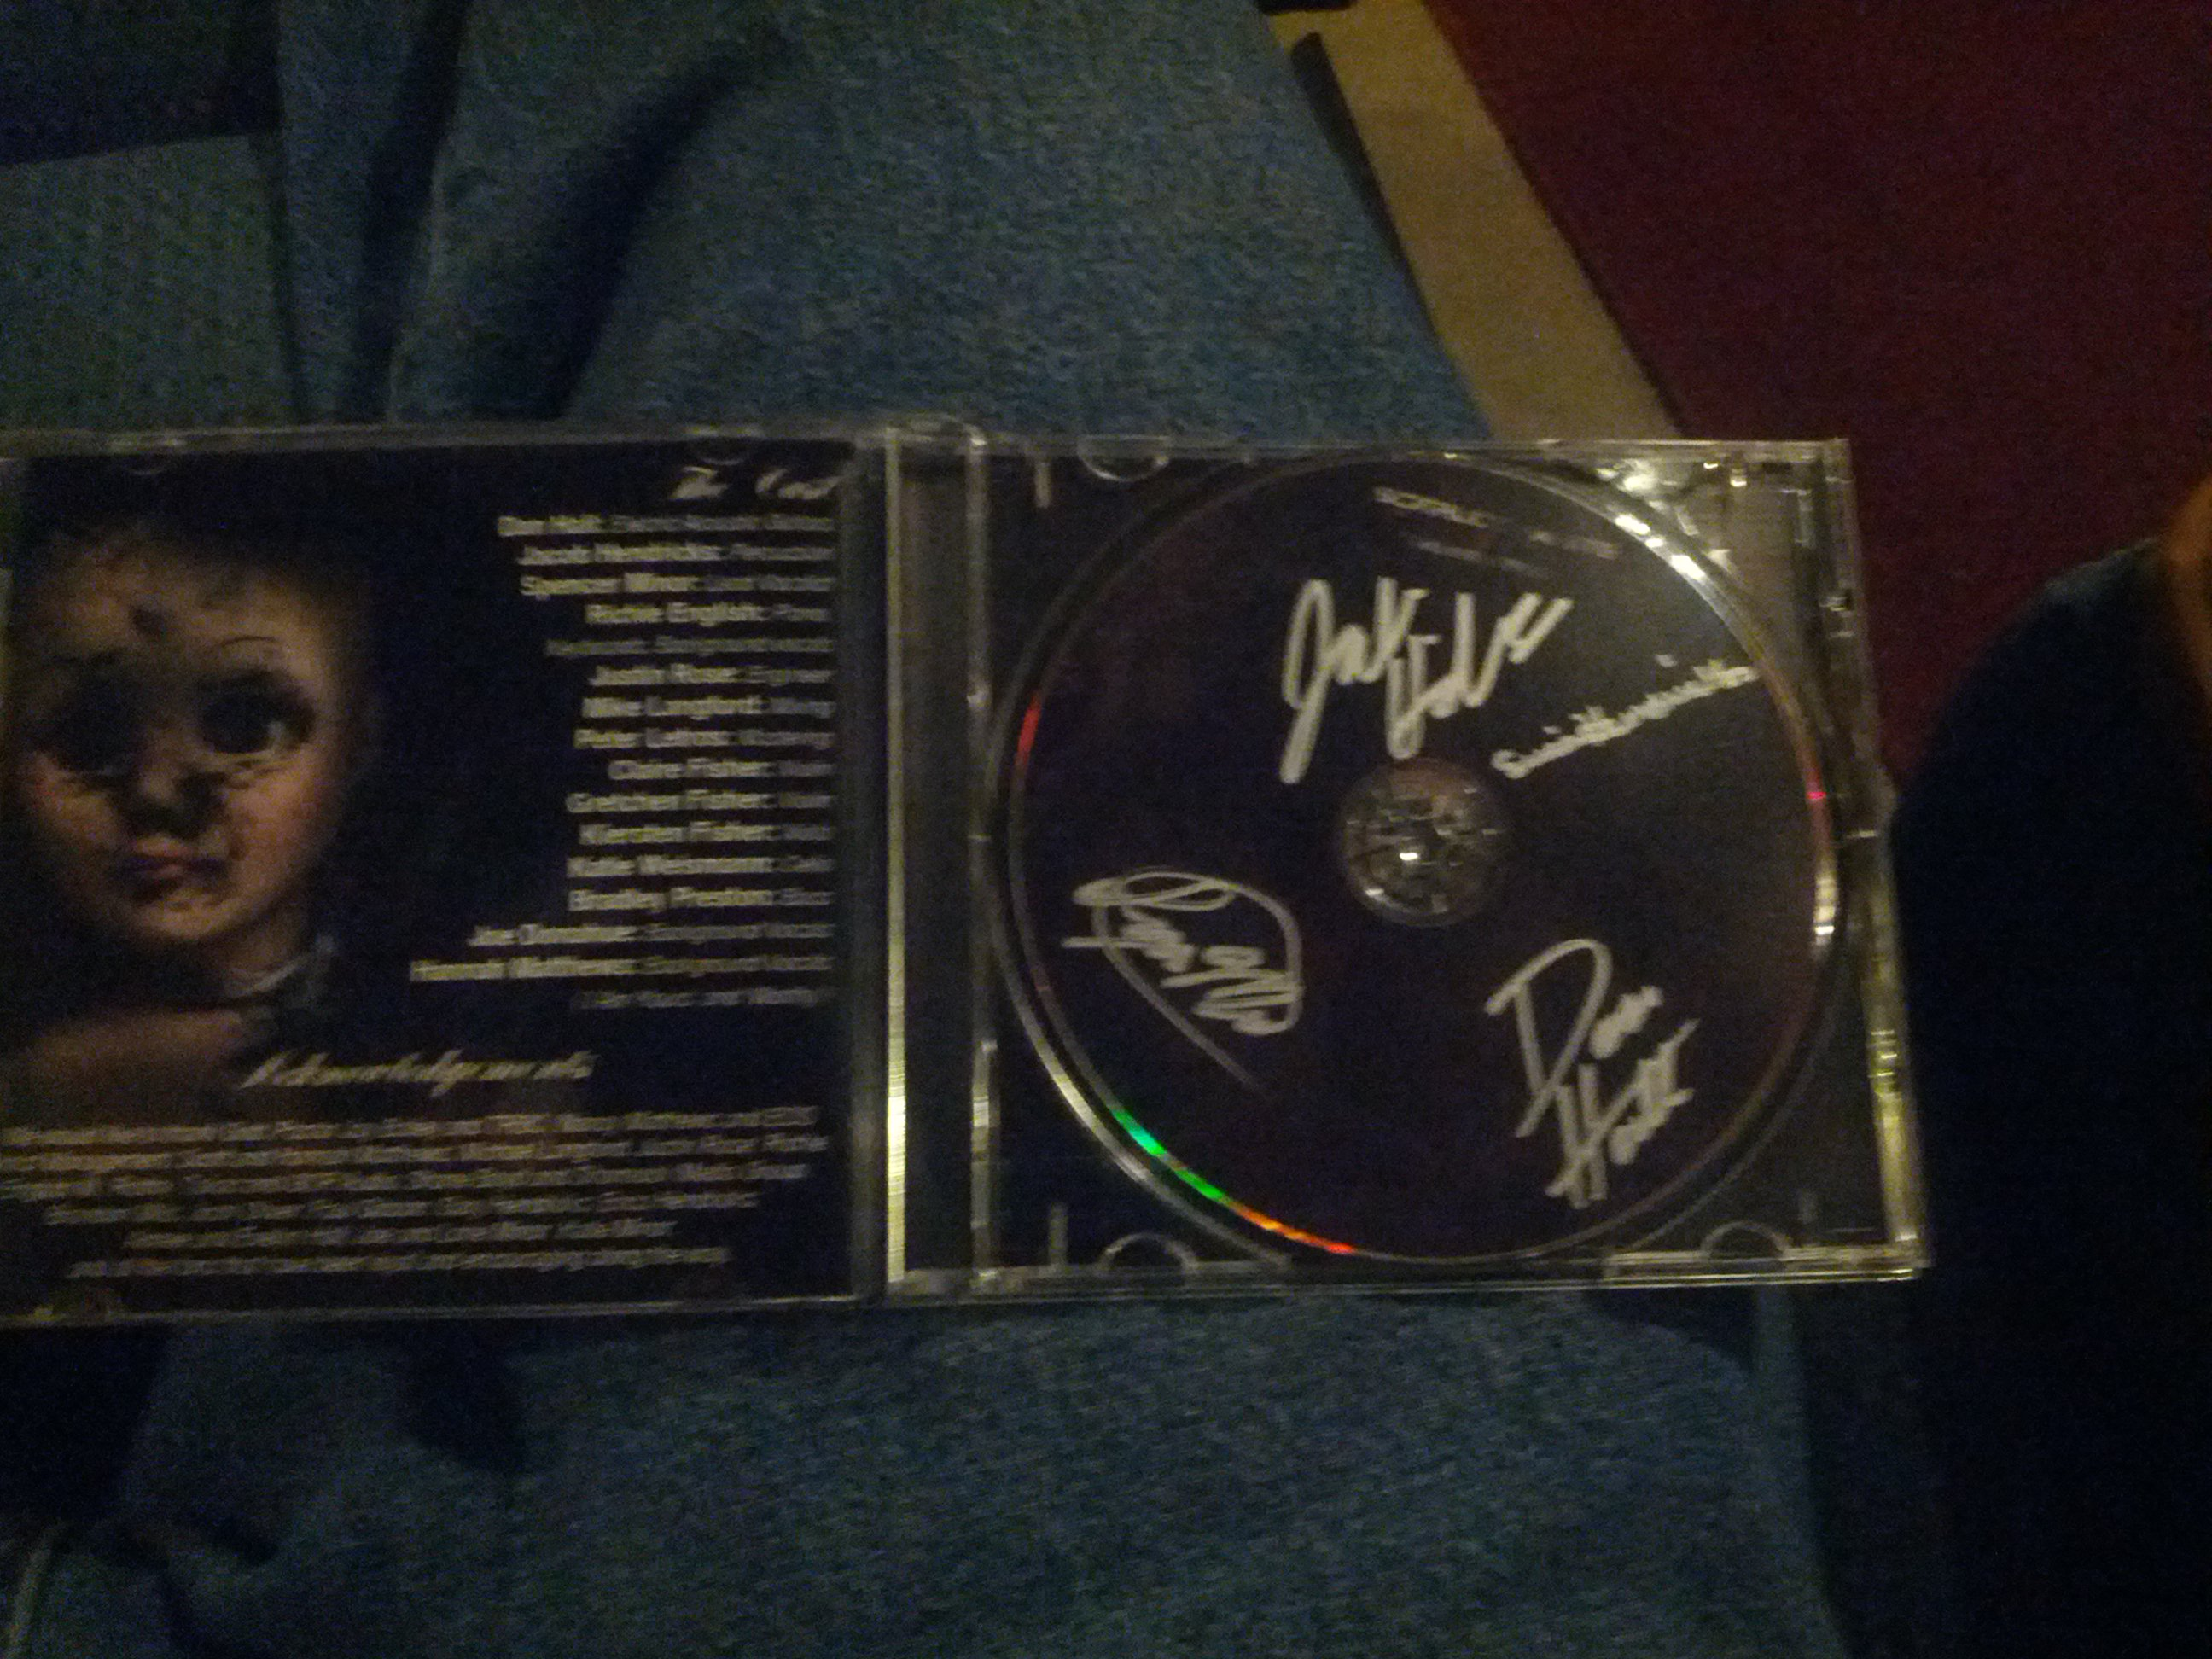 My personally Signed copy courtesy of these amazing people!